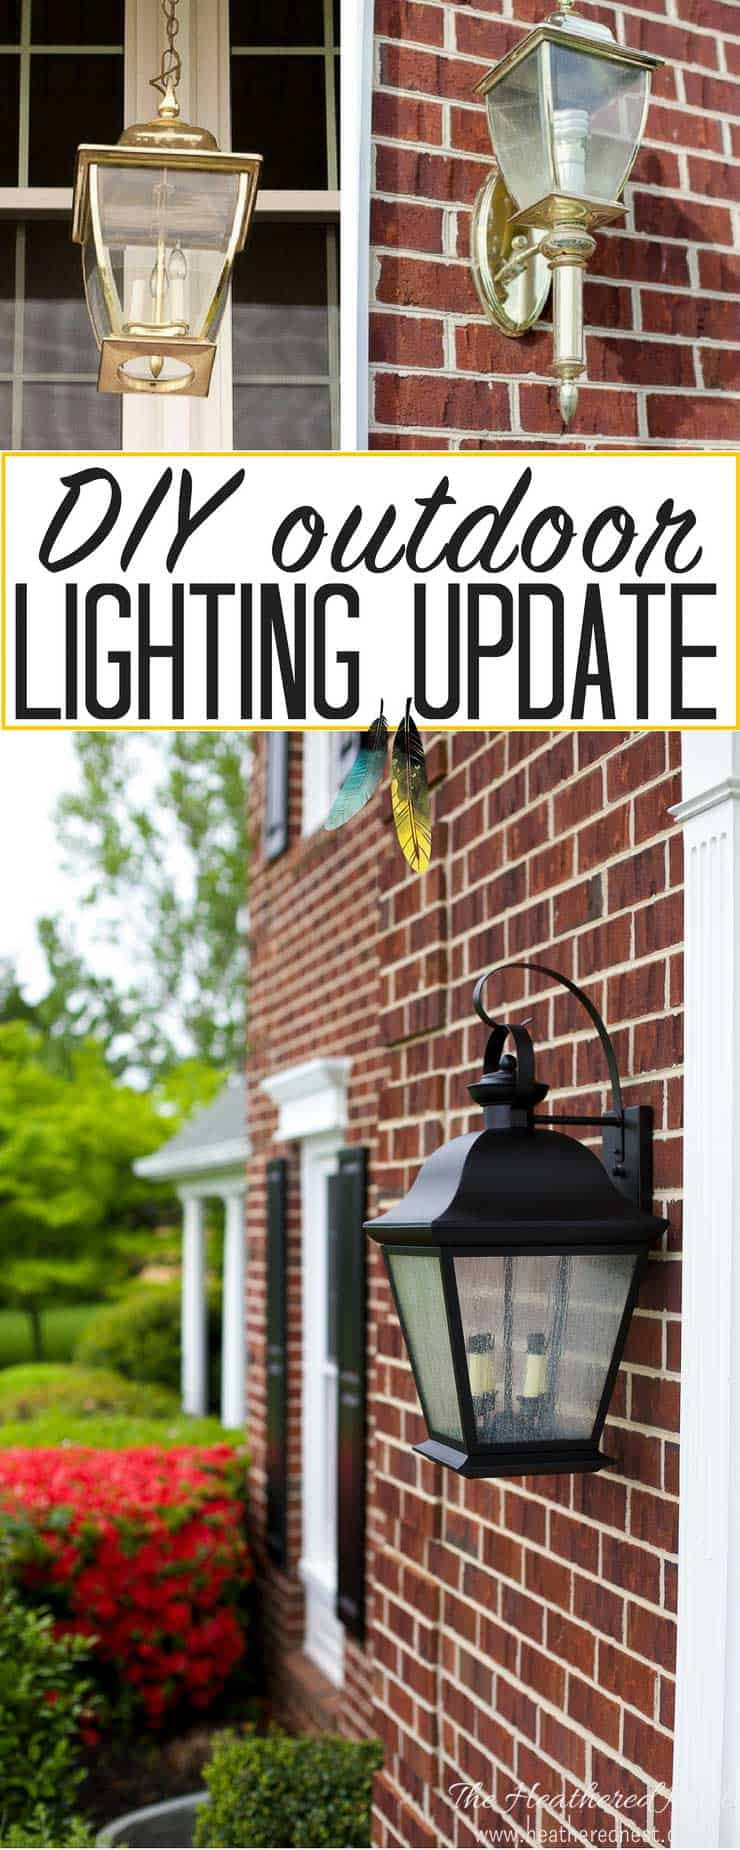 Gorgeous outdoor lighting DIY update!!